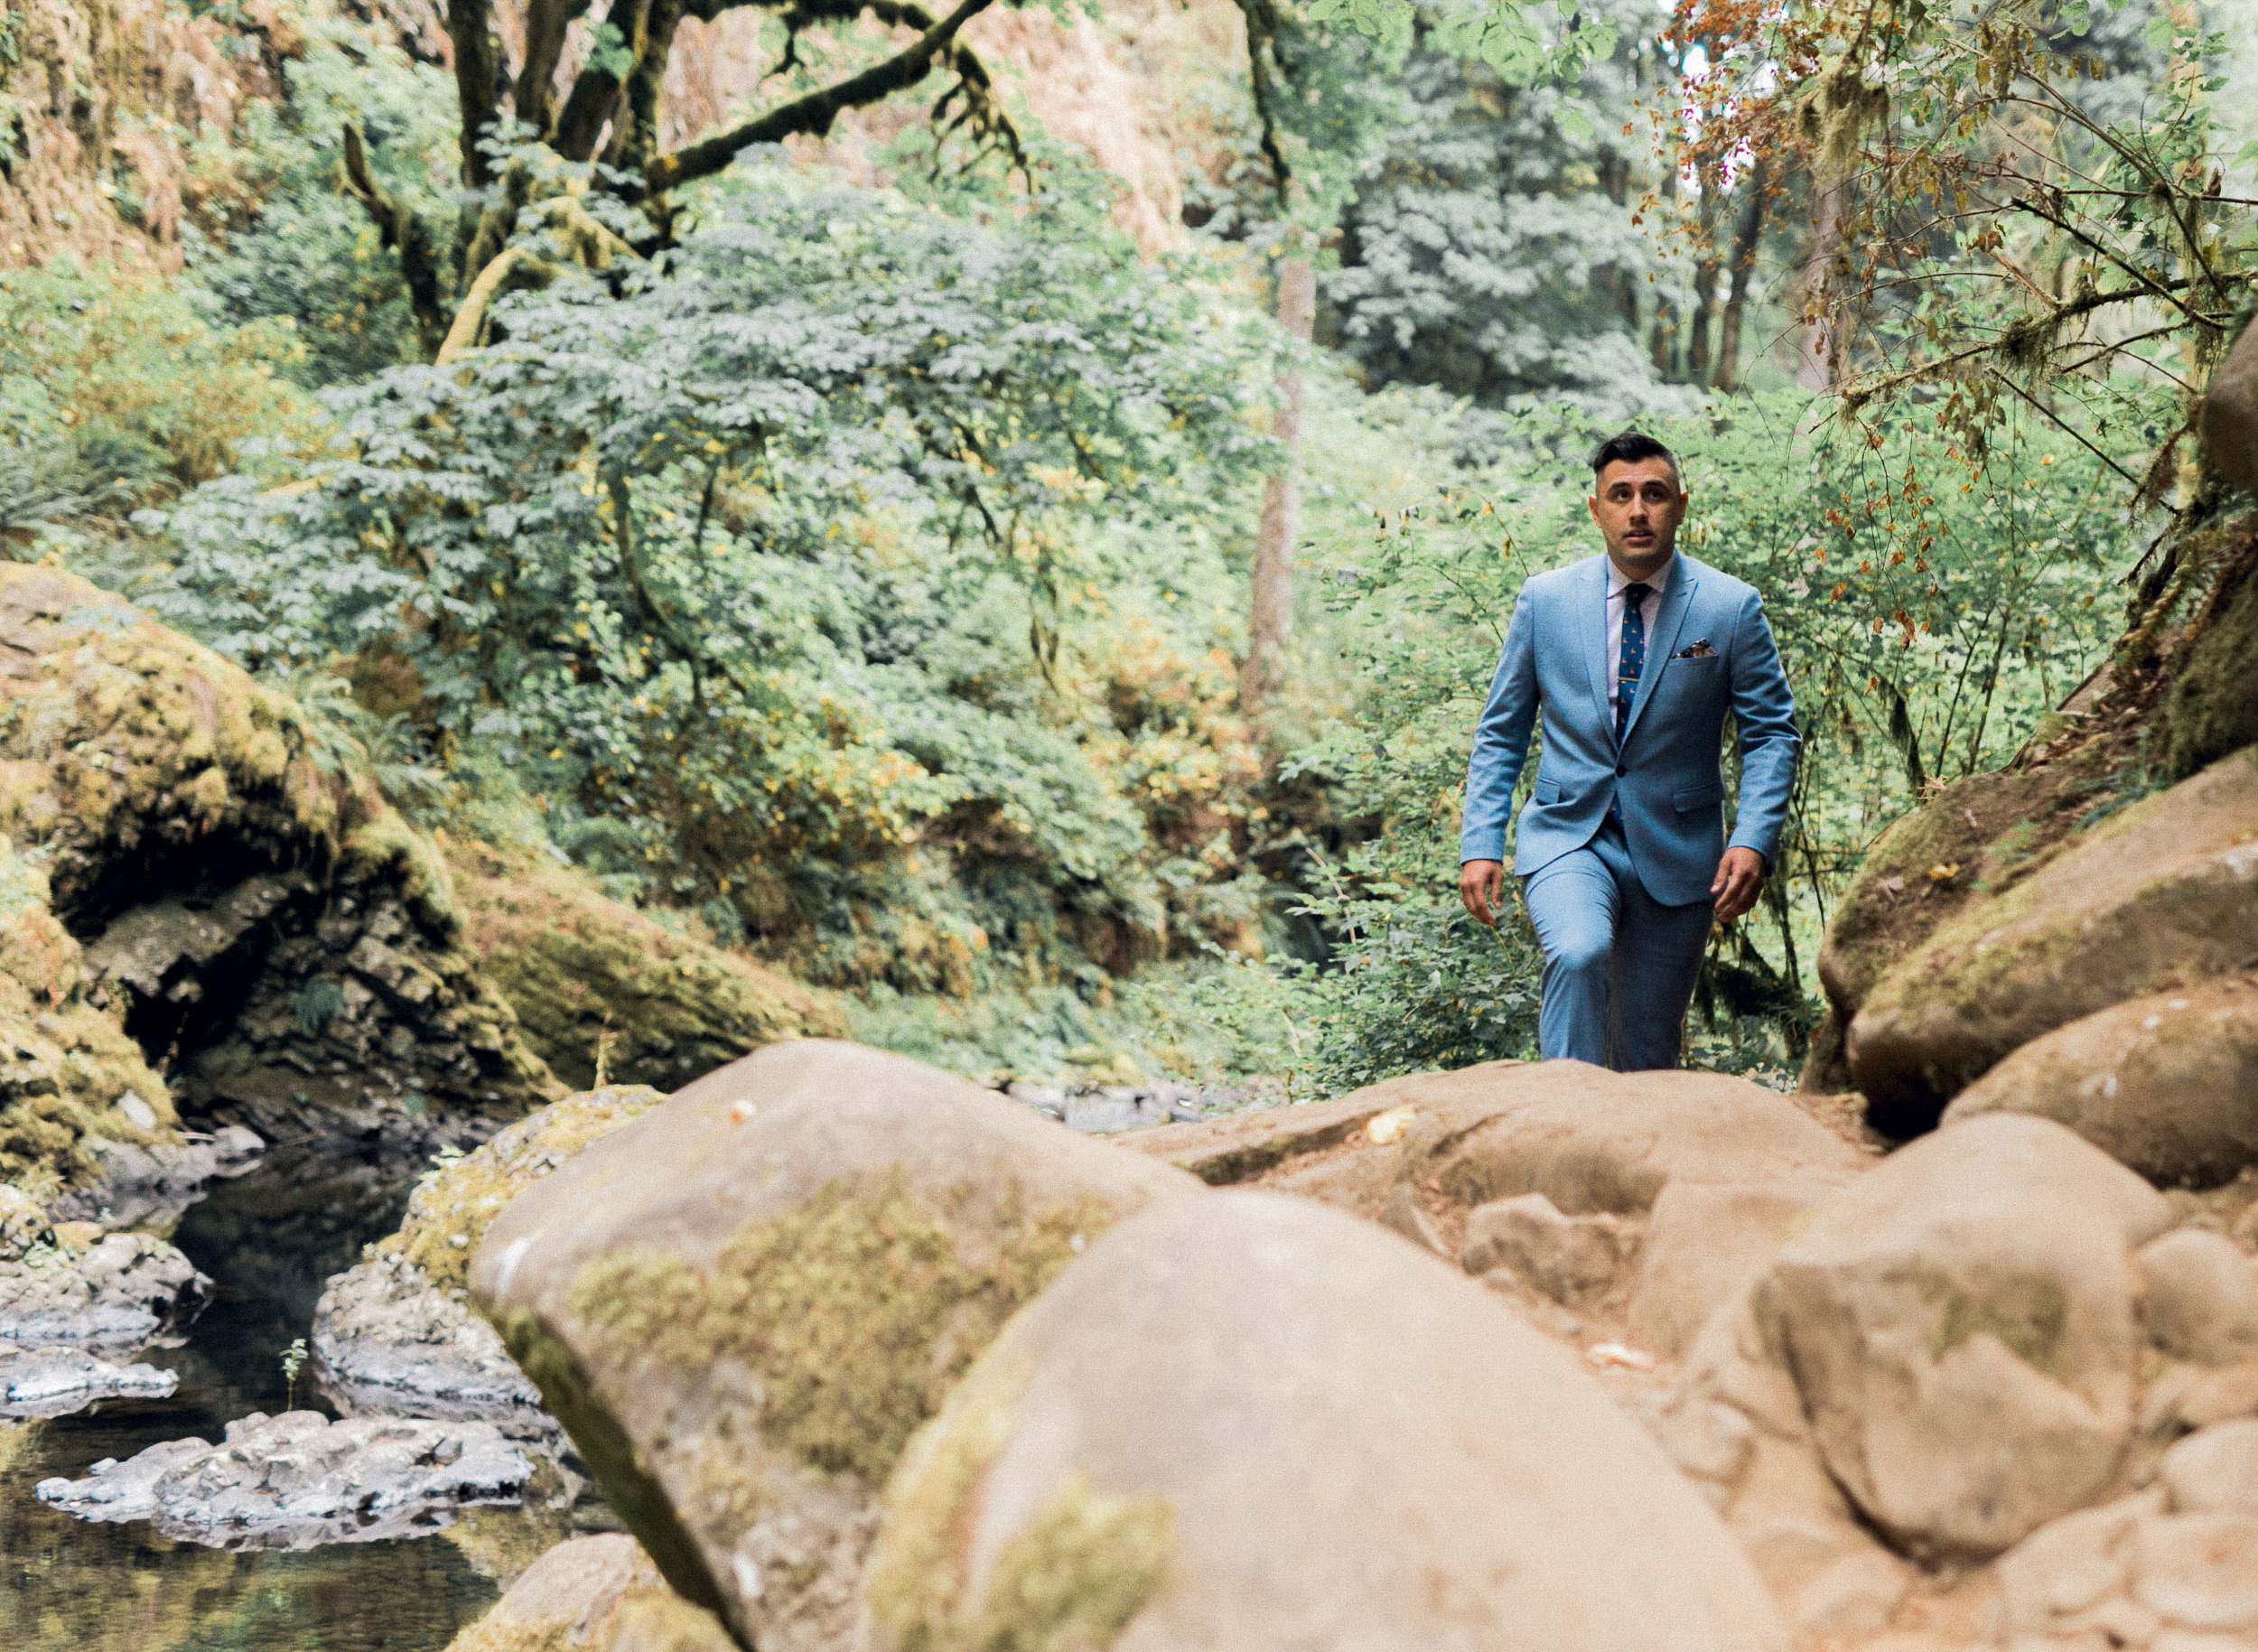 abiqua_falls_elopement_wedding_oregon_photographer_videographer_045.jpg